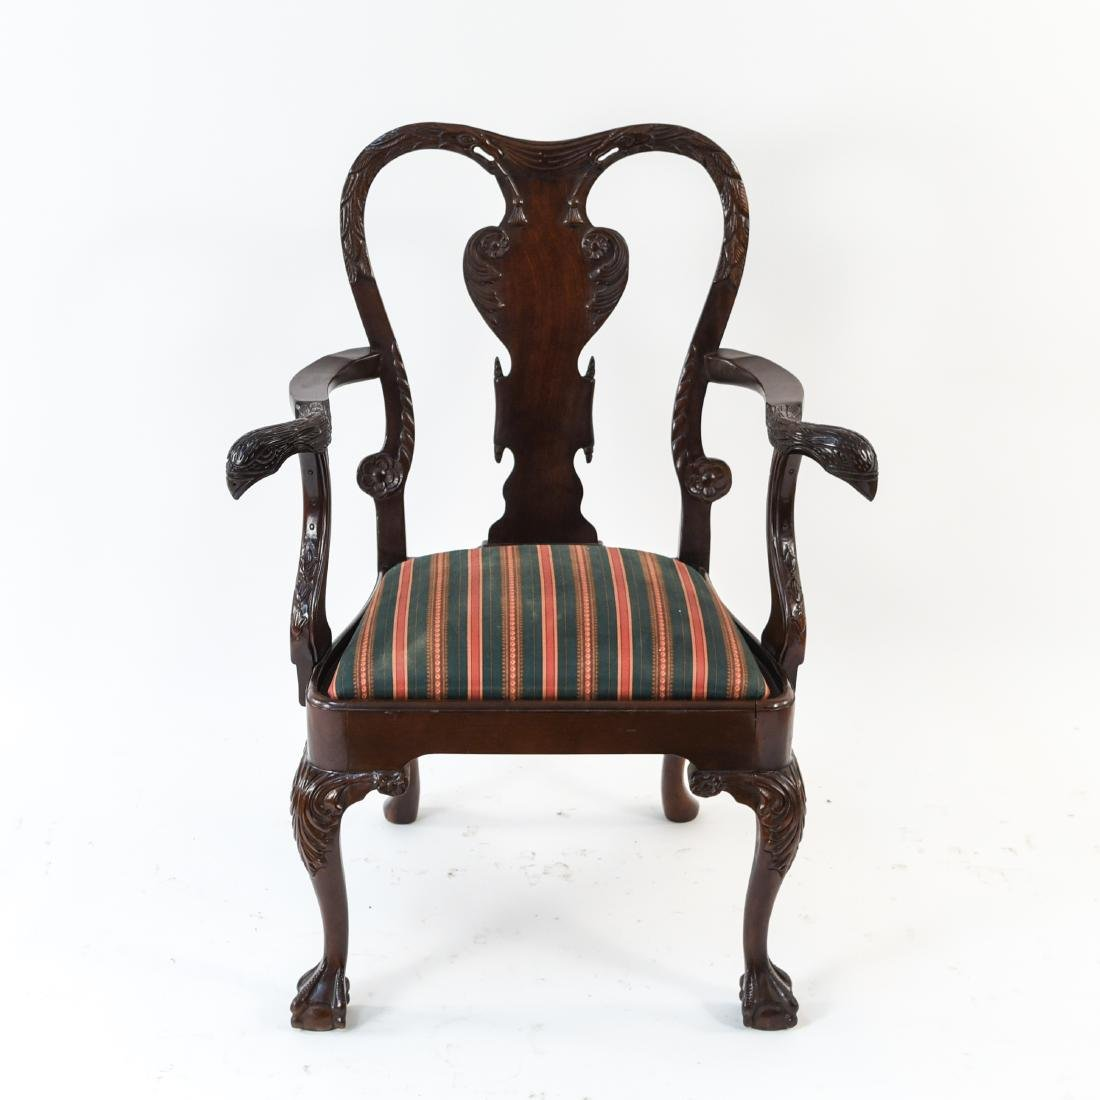 QUEEN ANNE STYLE CARVED ARMCHAIR